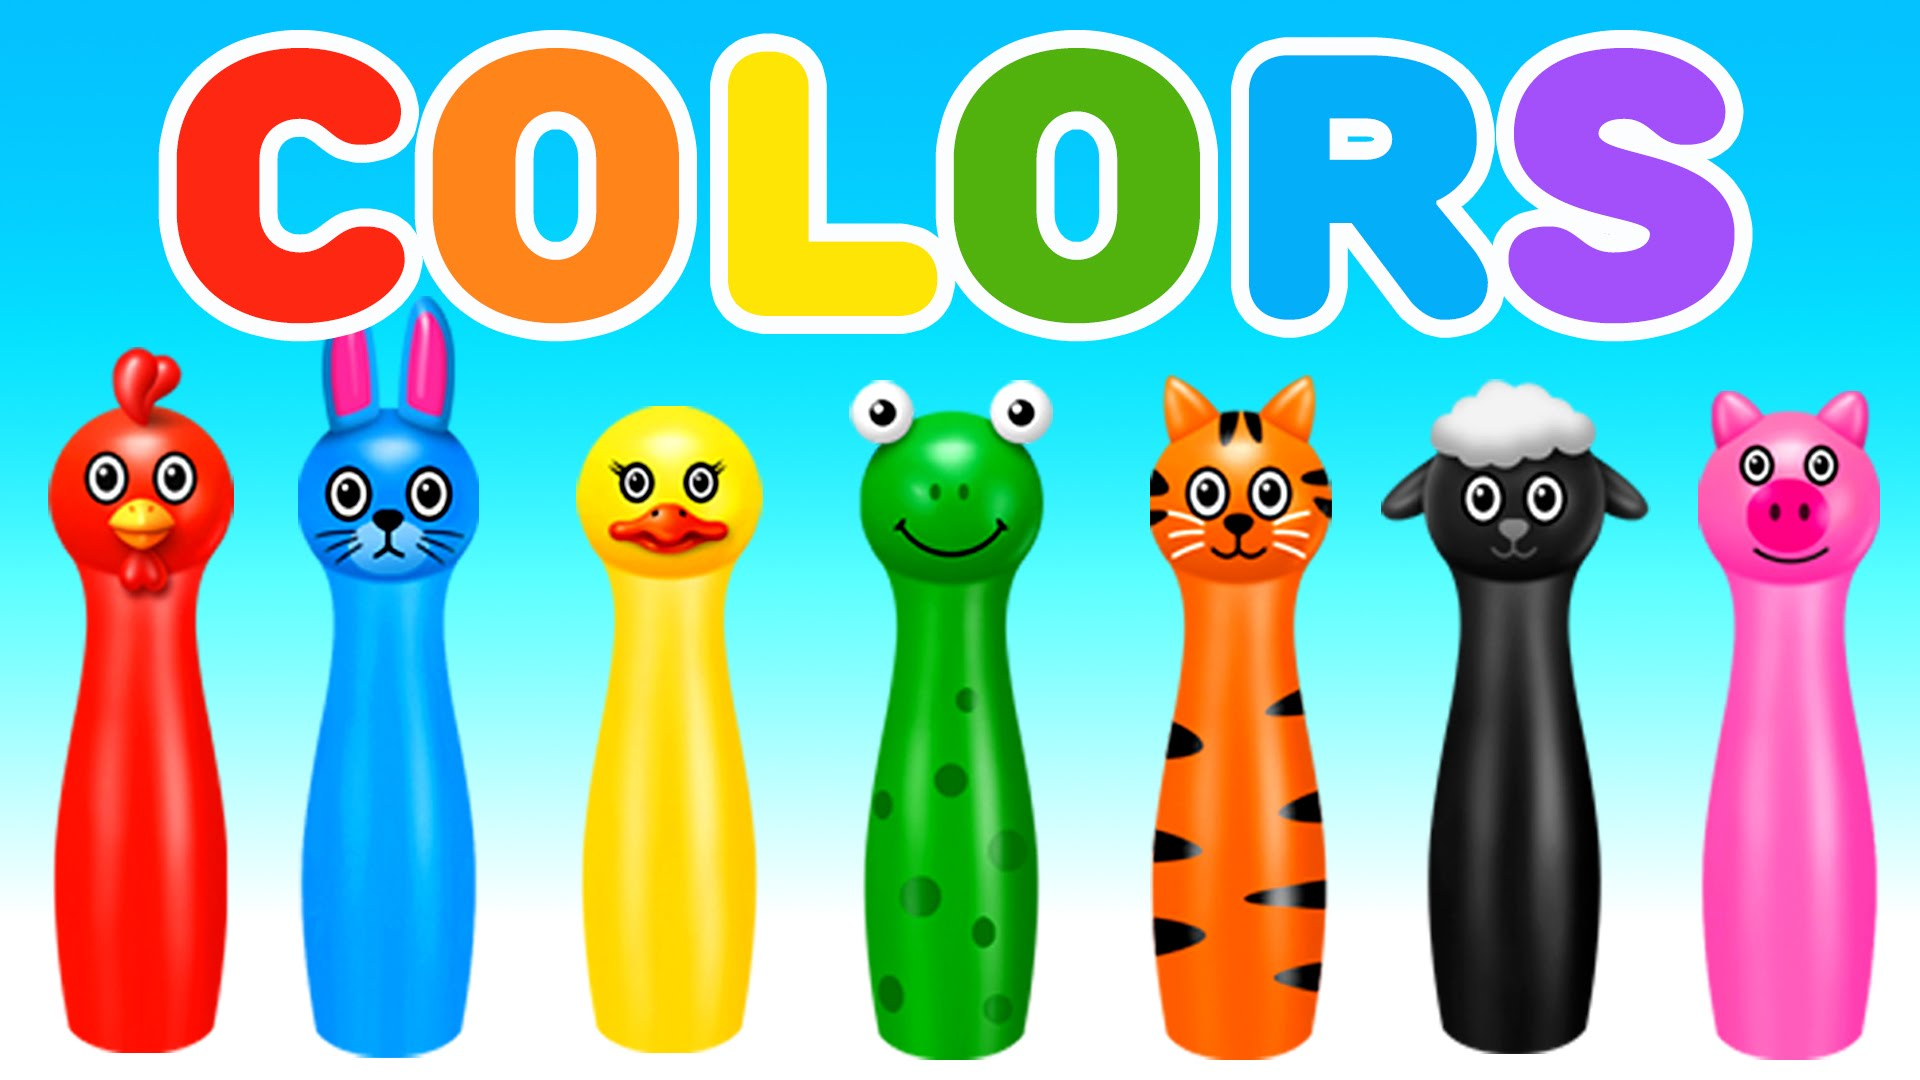 Gaming clipart number game. Learn colors with bowling